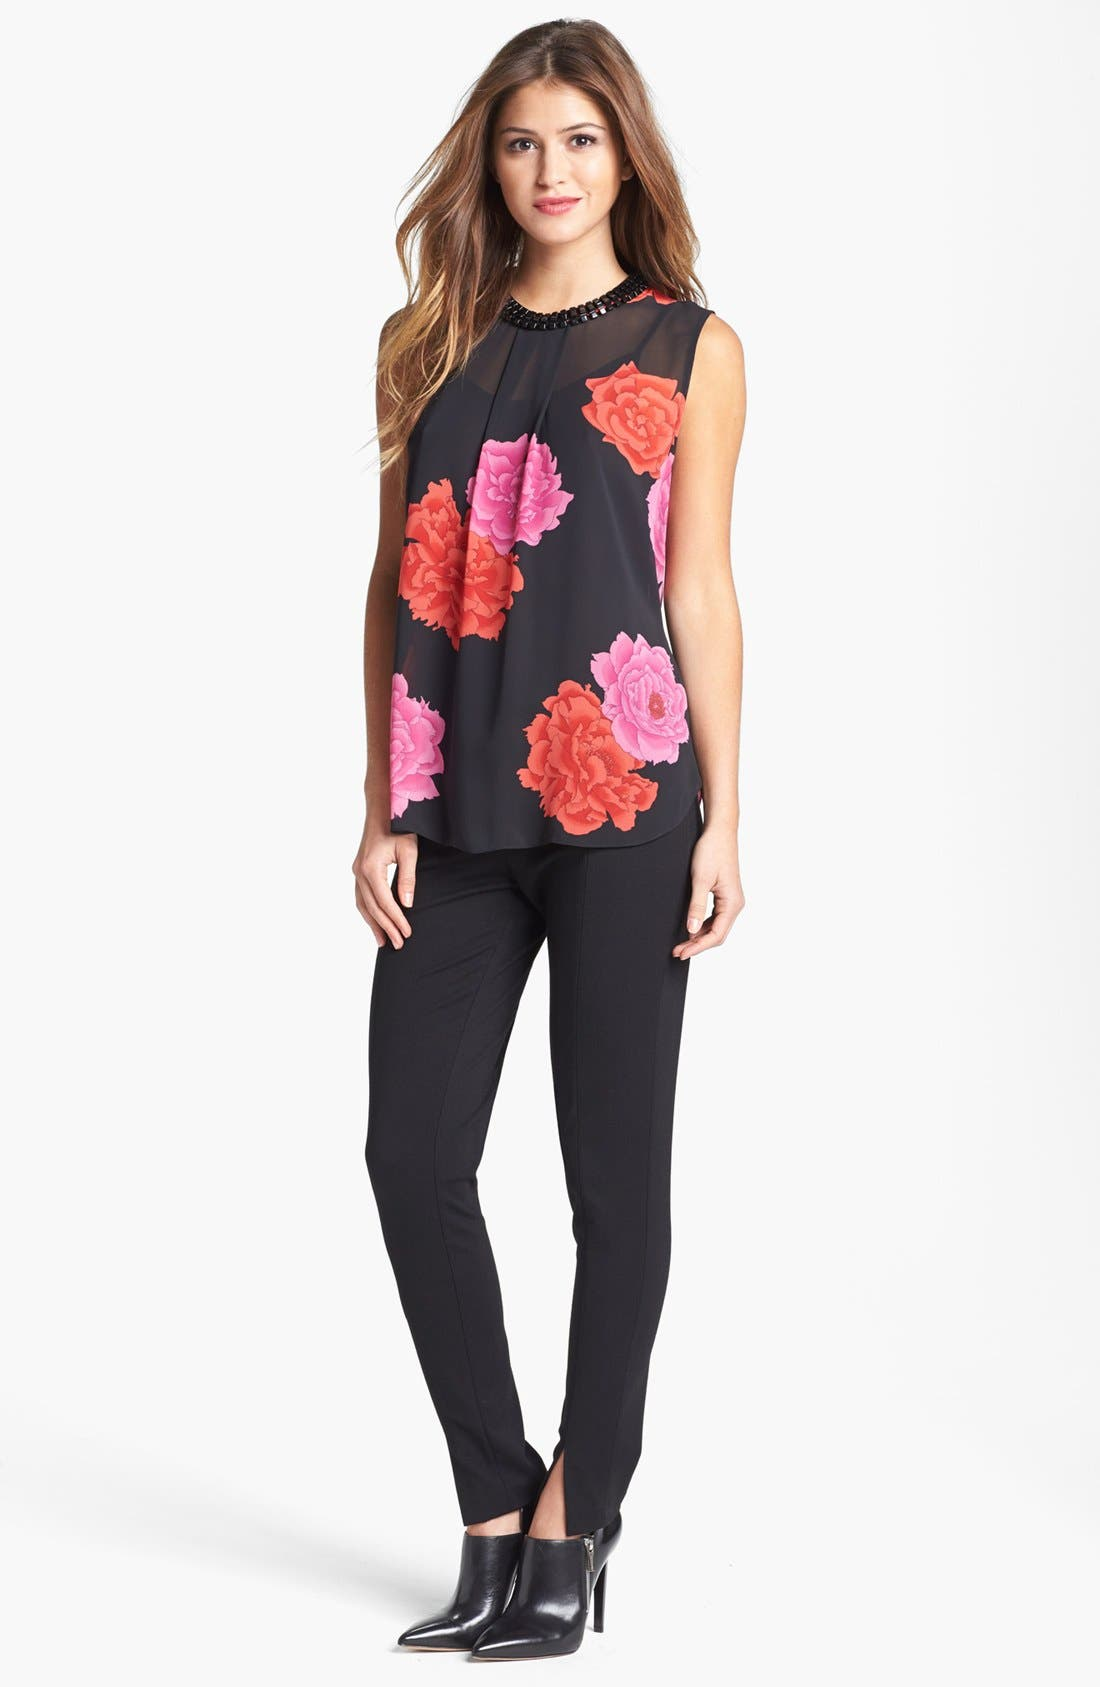 Alternate Image 1 Selected - Vince Camuto 'Peonies' Embellished Blouse